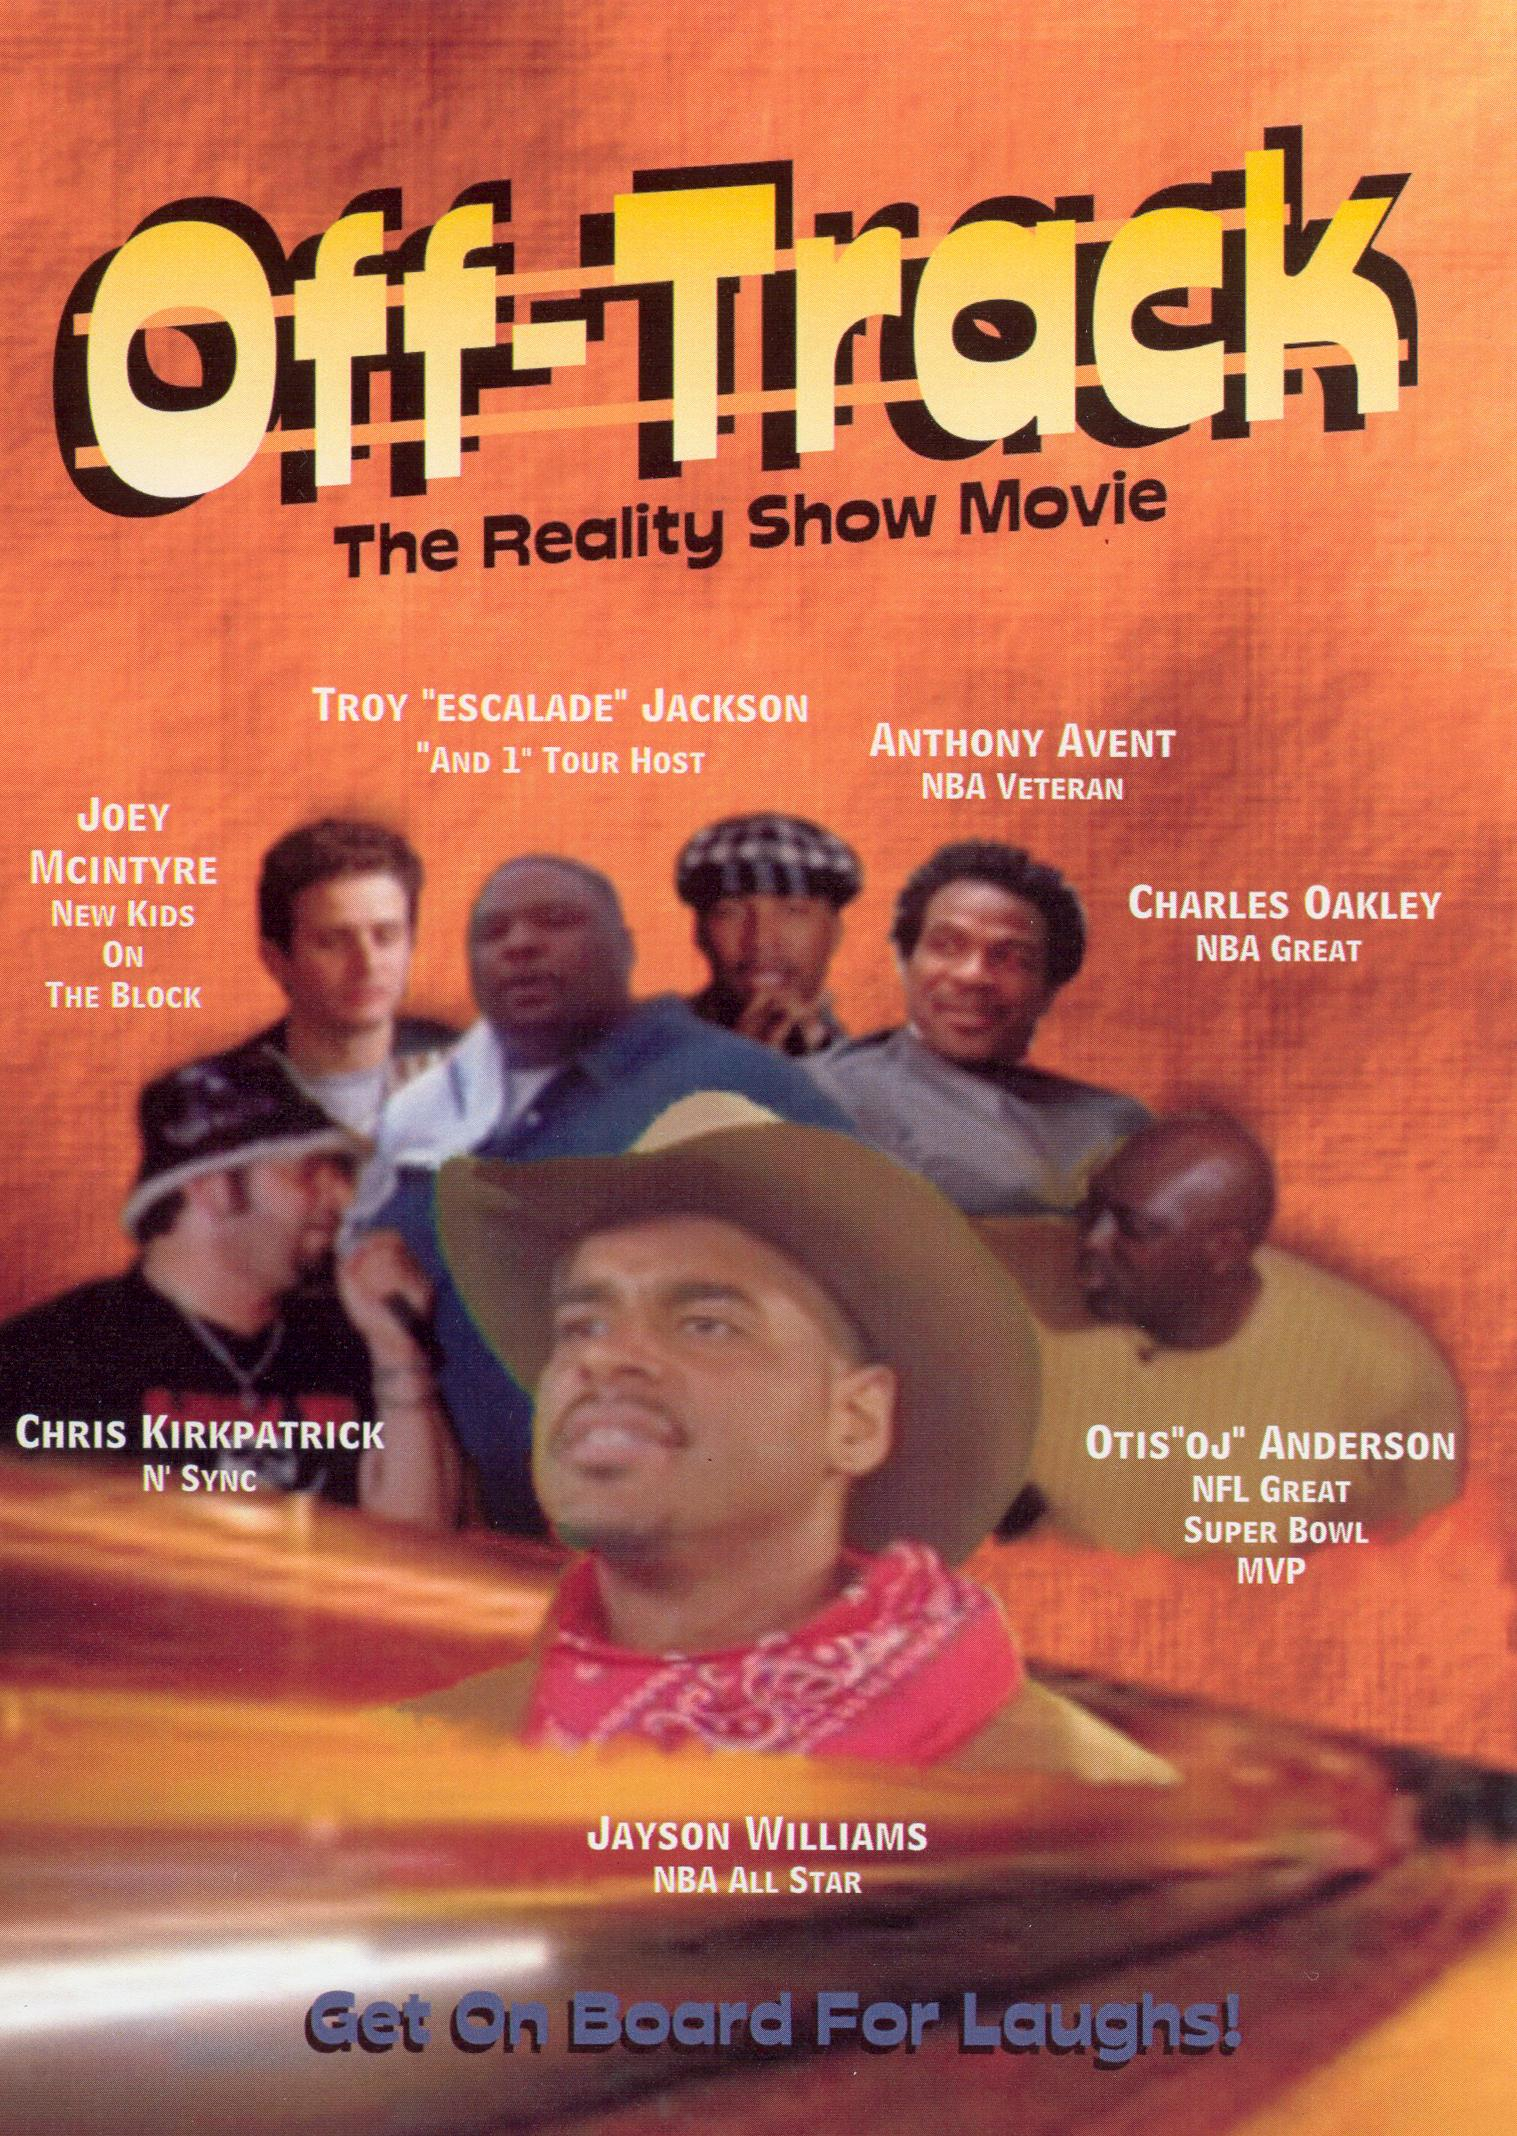 Off-Track: The Reality Show Movie